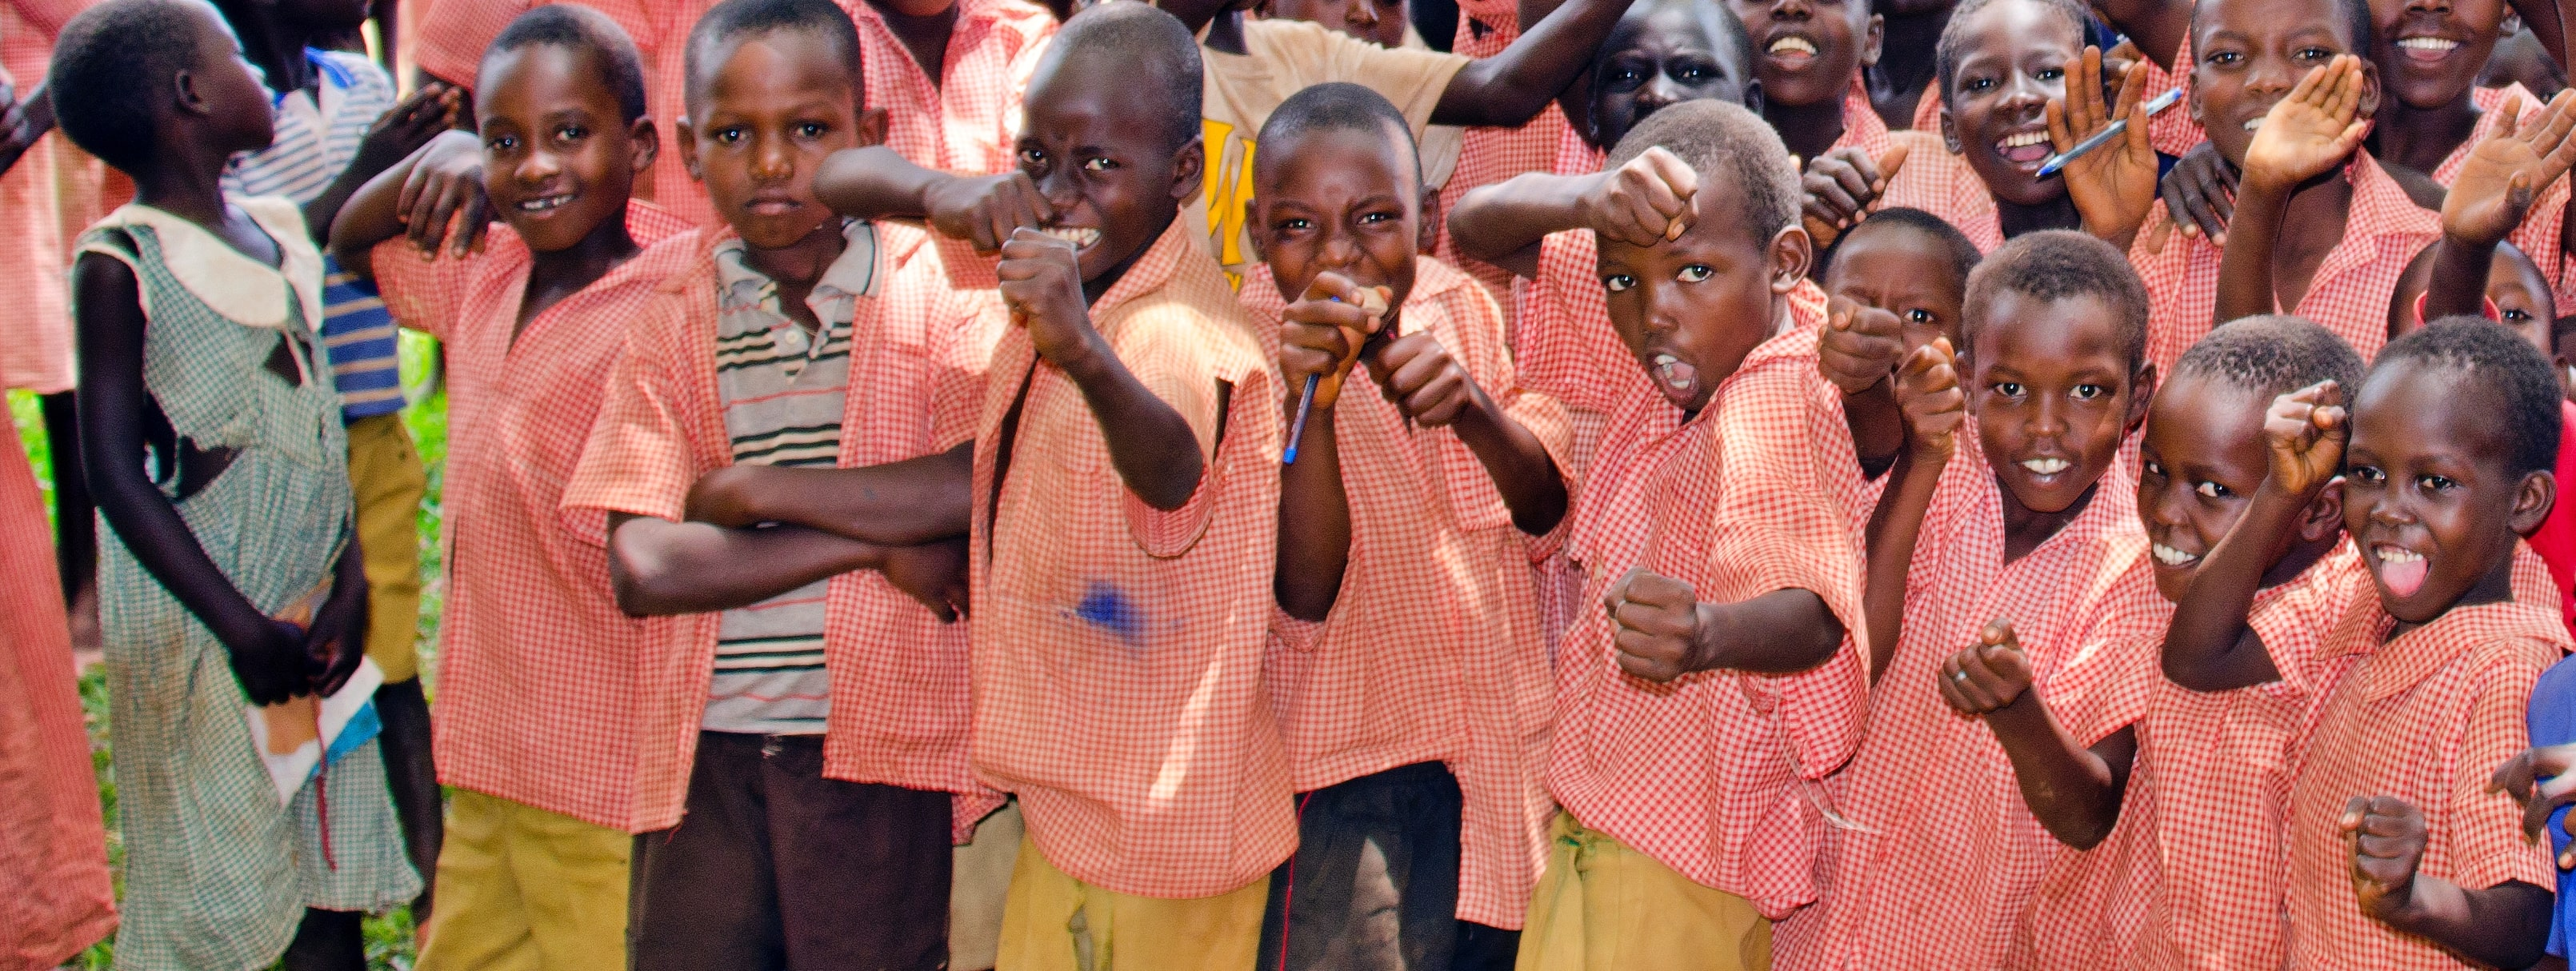 kiryandongo students laughing playing group